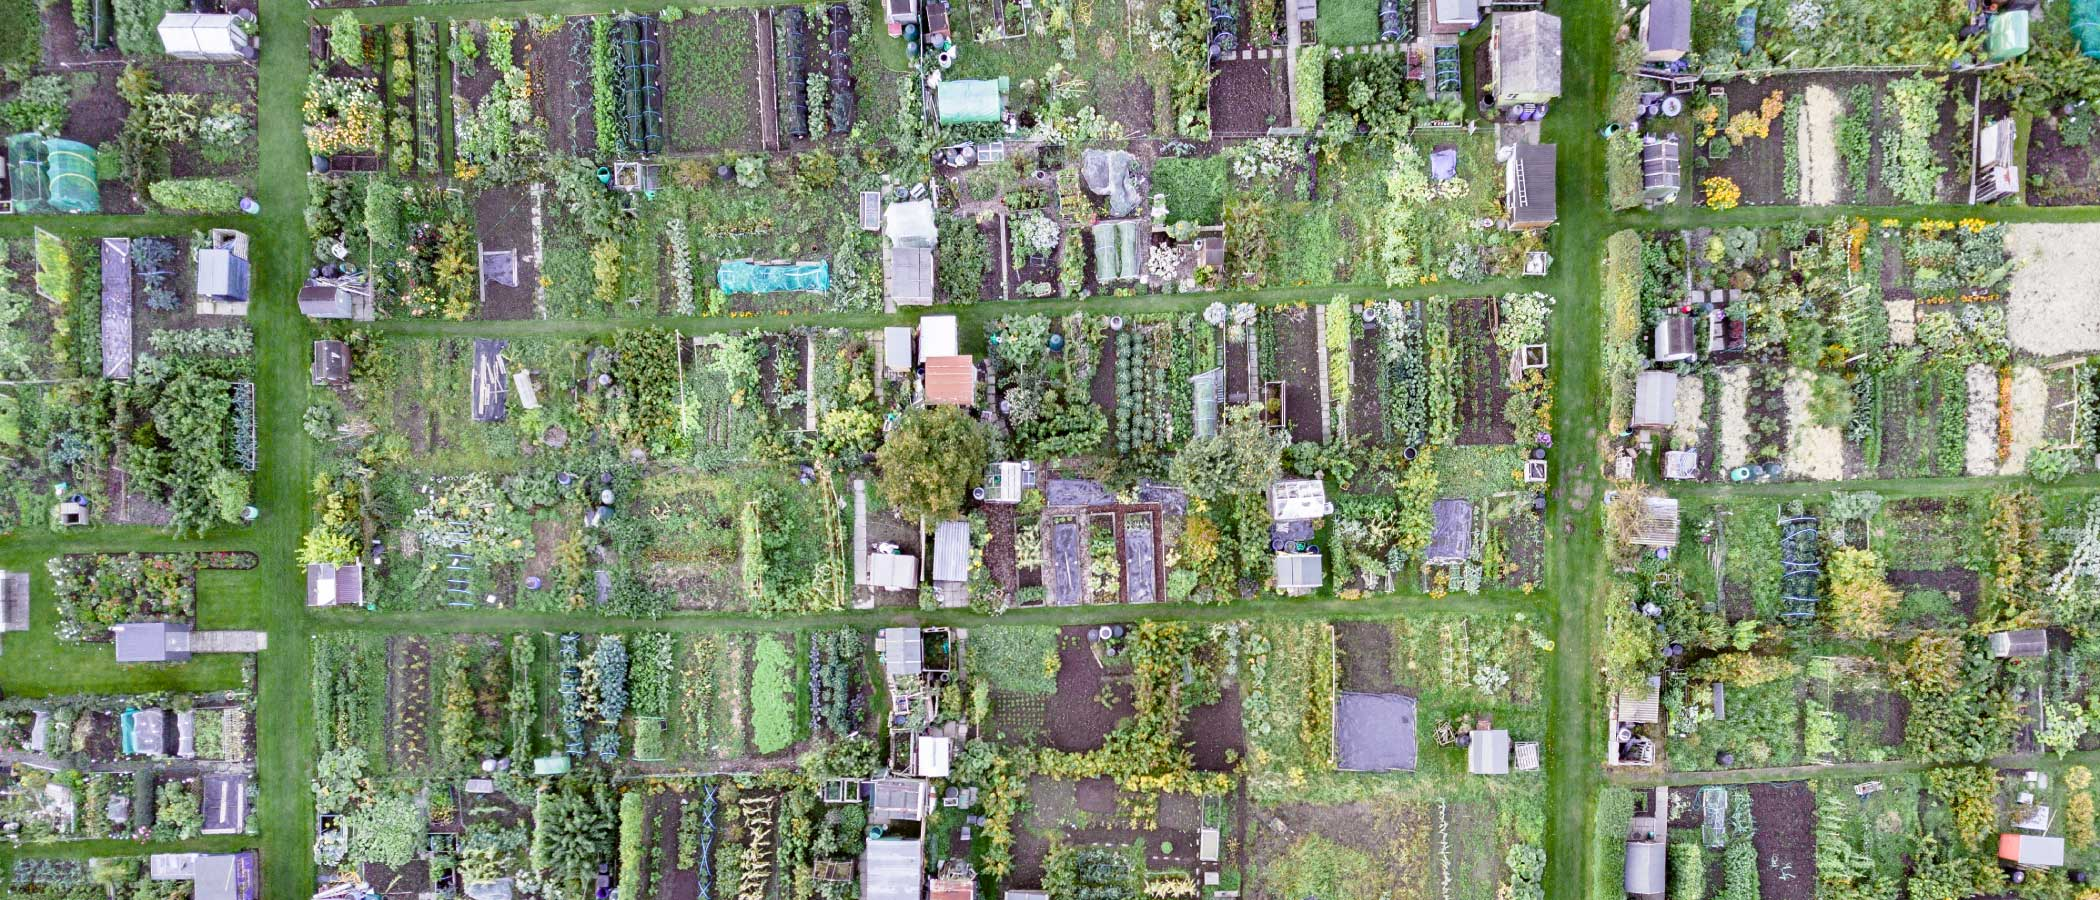 Aerial view of small neighborhood garden plots.